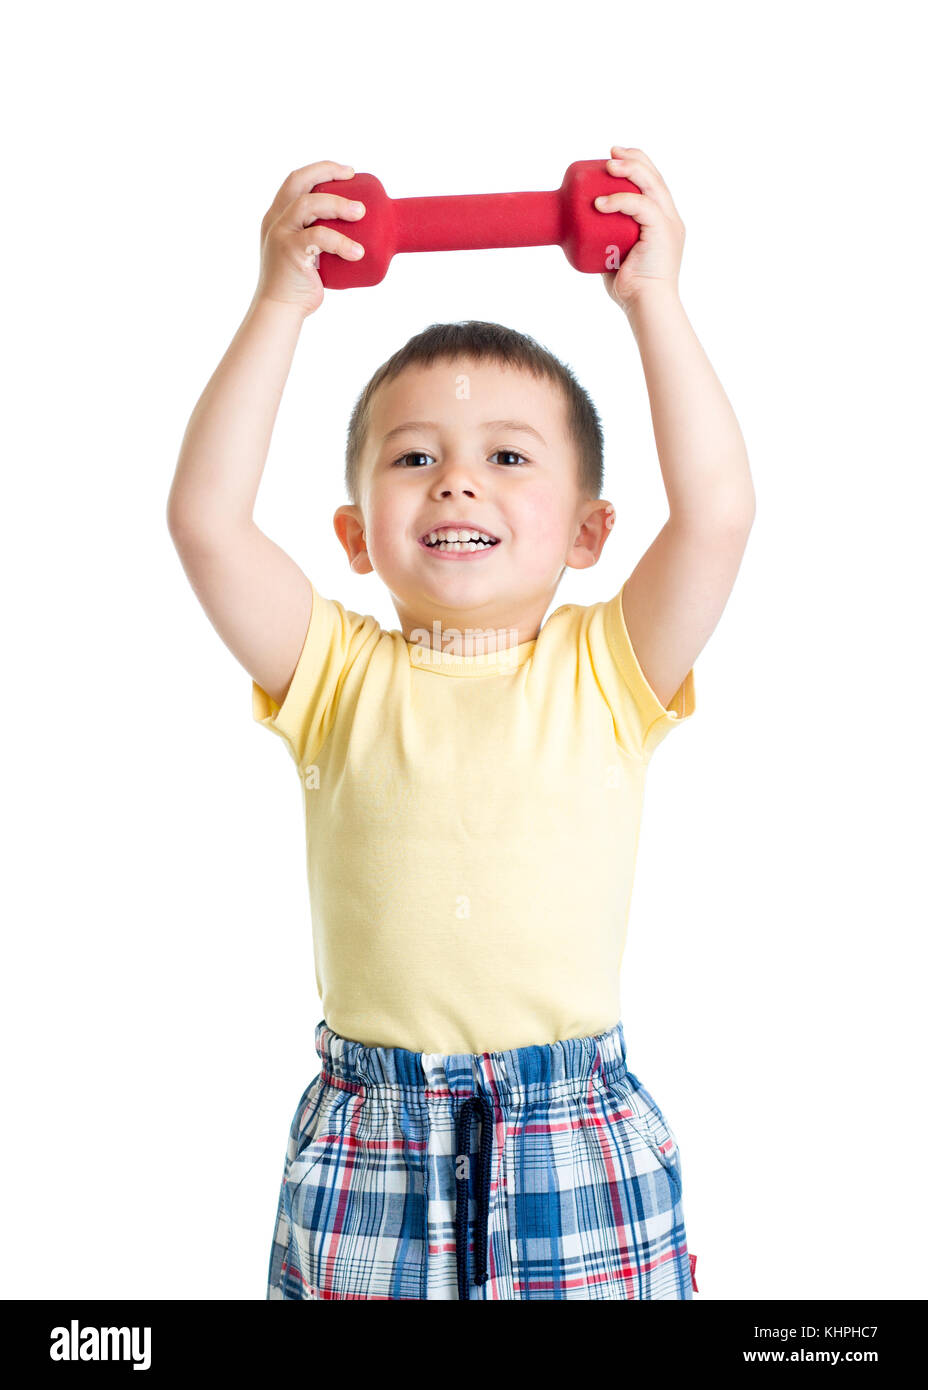 Child boy is engaged in physical training with red dumbbell - Stock Image